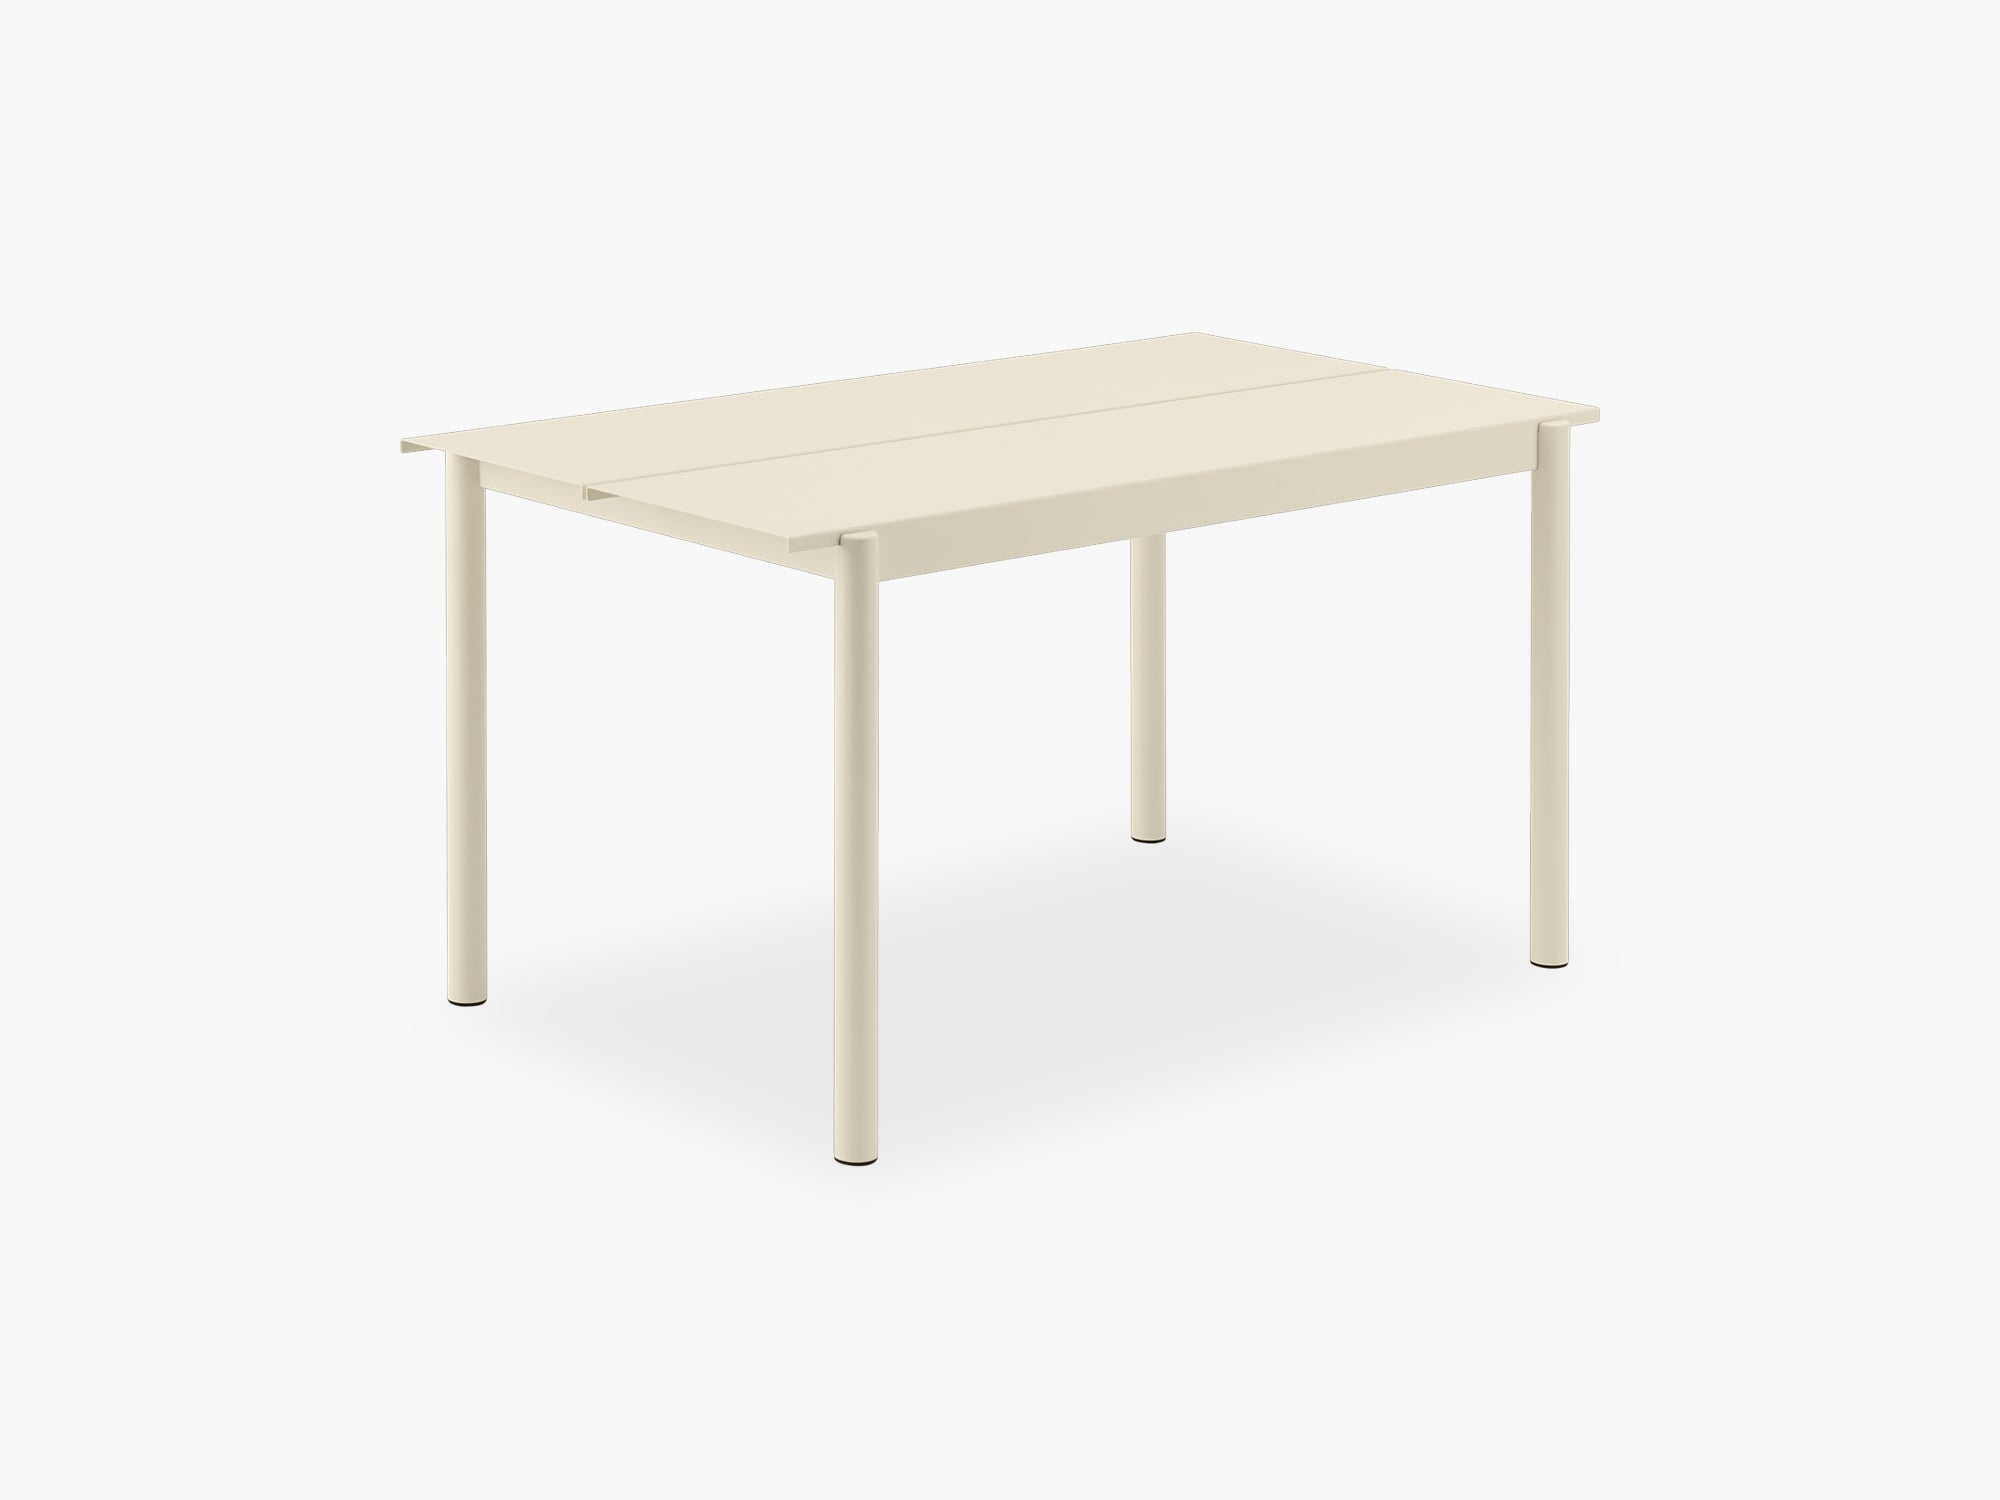 Linear Steel Table - 140, White fra Muuto